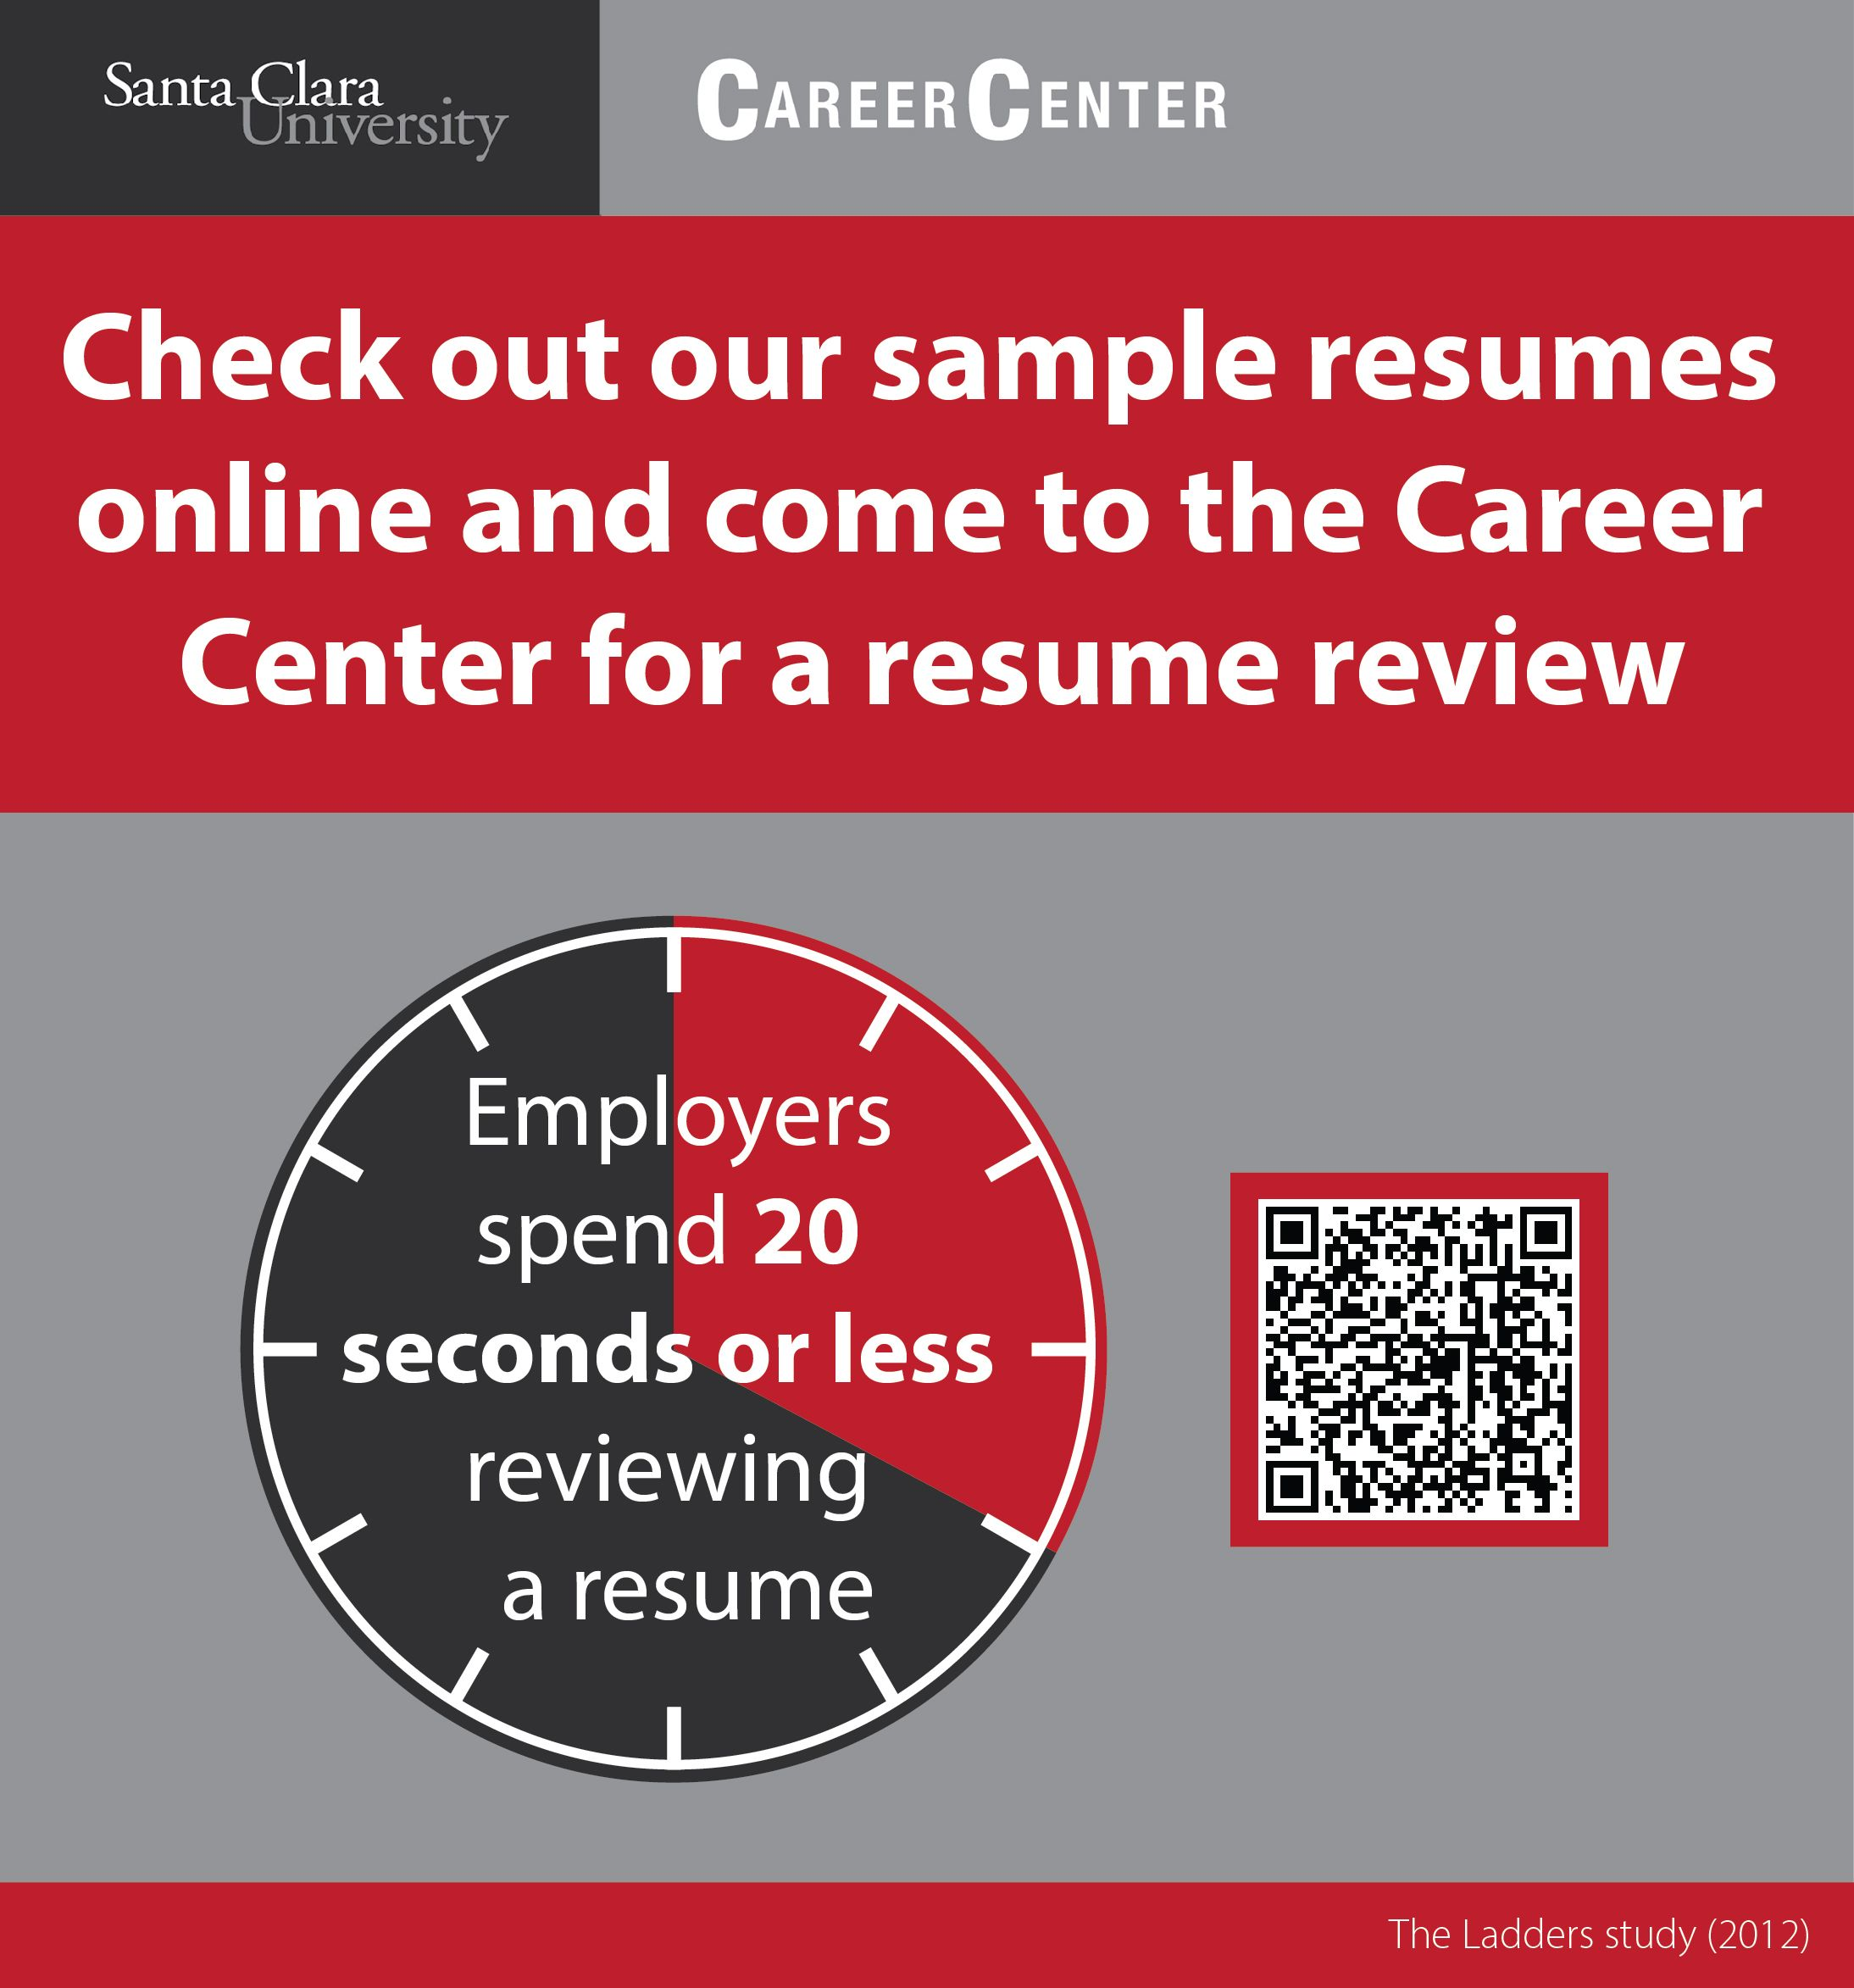 Resume Review Interesting Resume Review  Scu Career Center Infographics 20132014  Pinterest